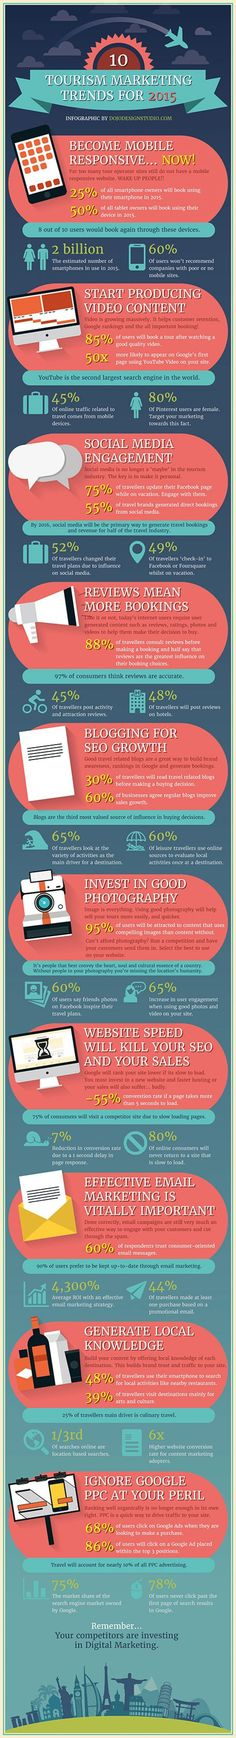 Top10 #Tourism #Marketing Trends for 2015 [ #infographic ]